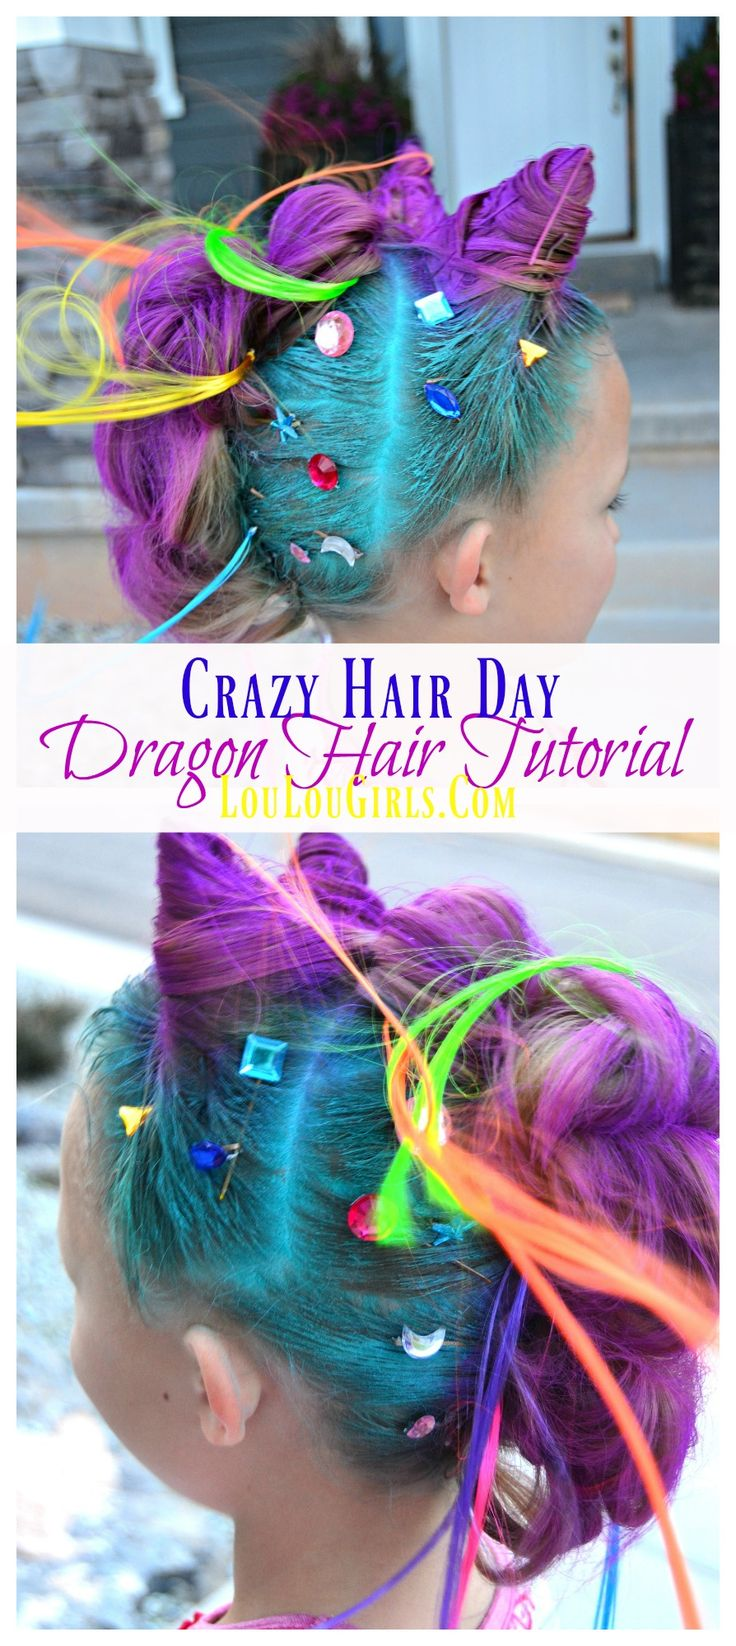 best 25+ crazy hair ideas on pinterest | crazy hair days, braids